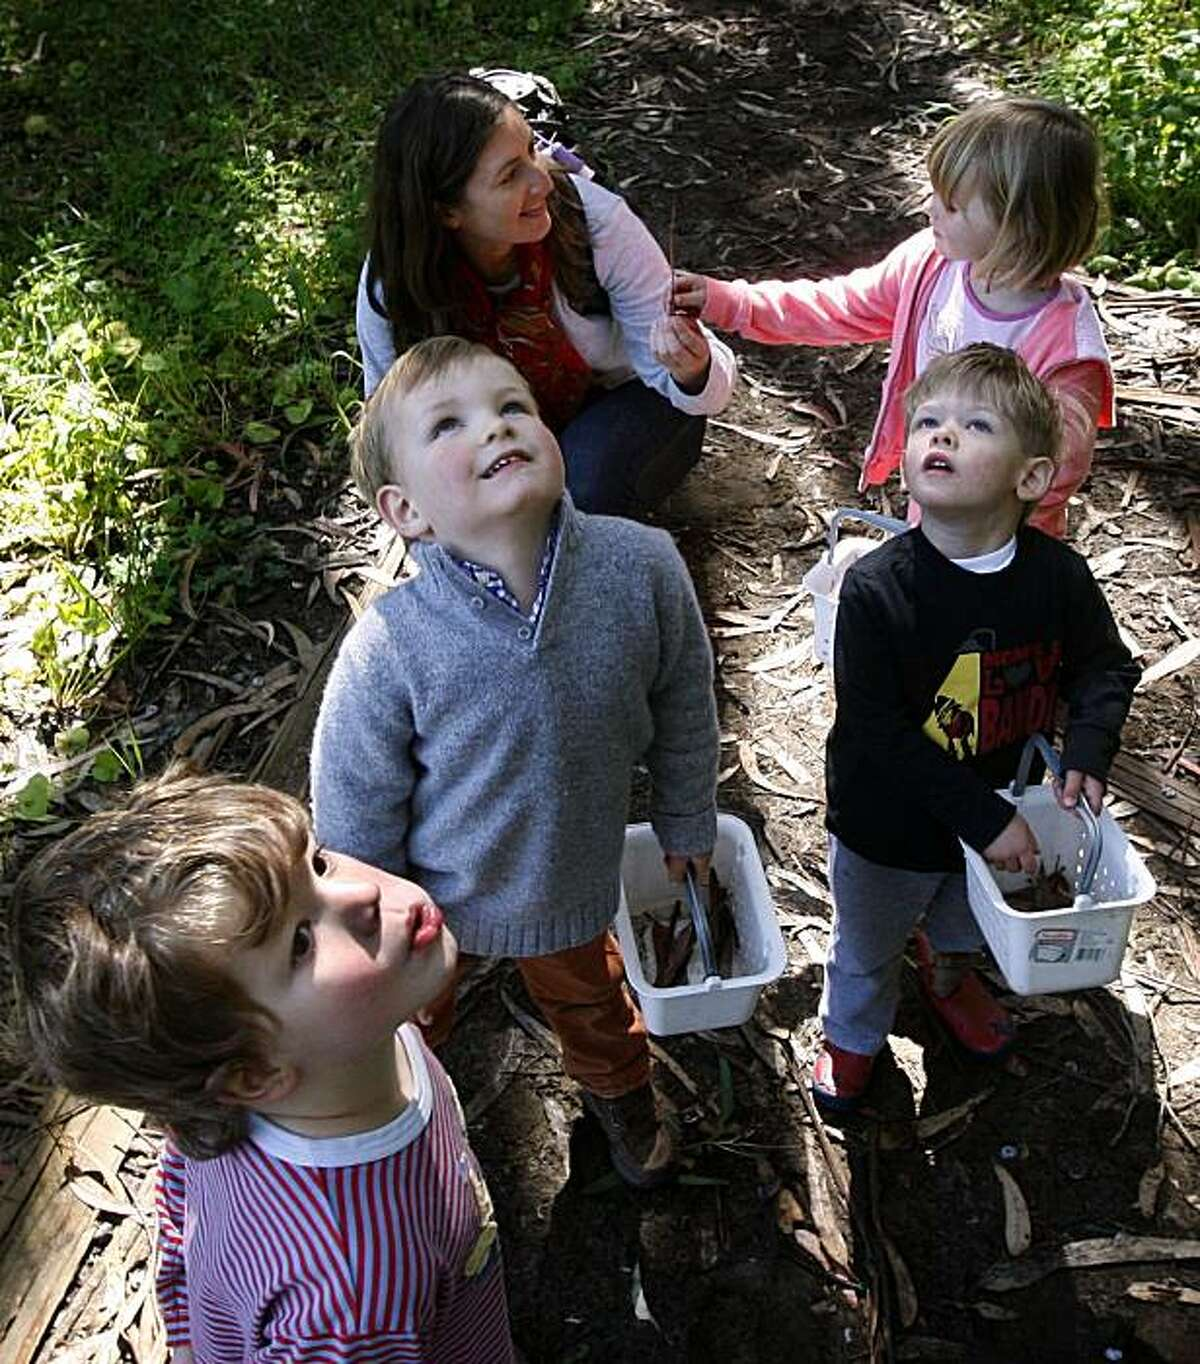 Scotty (lower left), Tate (center) and Jack look at the treetops above while teacher Becky Fien tends to Willa (background) during a walk in the forest at the Nature Nurture outdoor preschool program at The Presidio in San Francisco, Calif., on Tuesday, May 11, 2010.